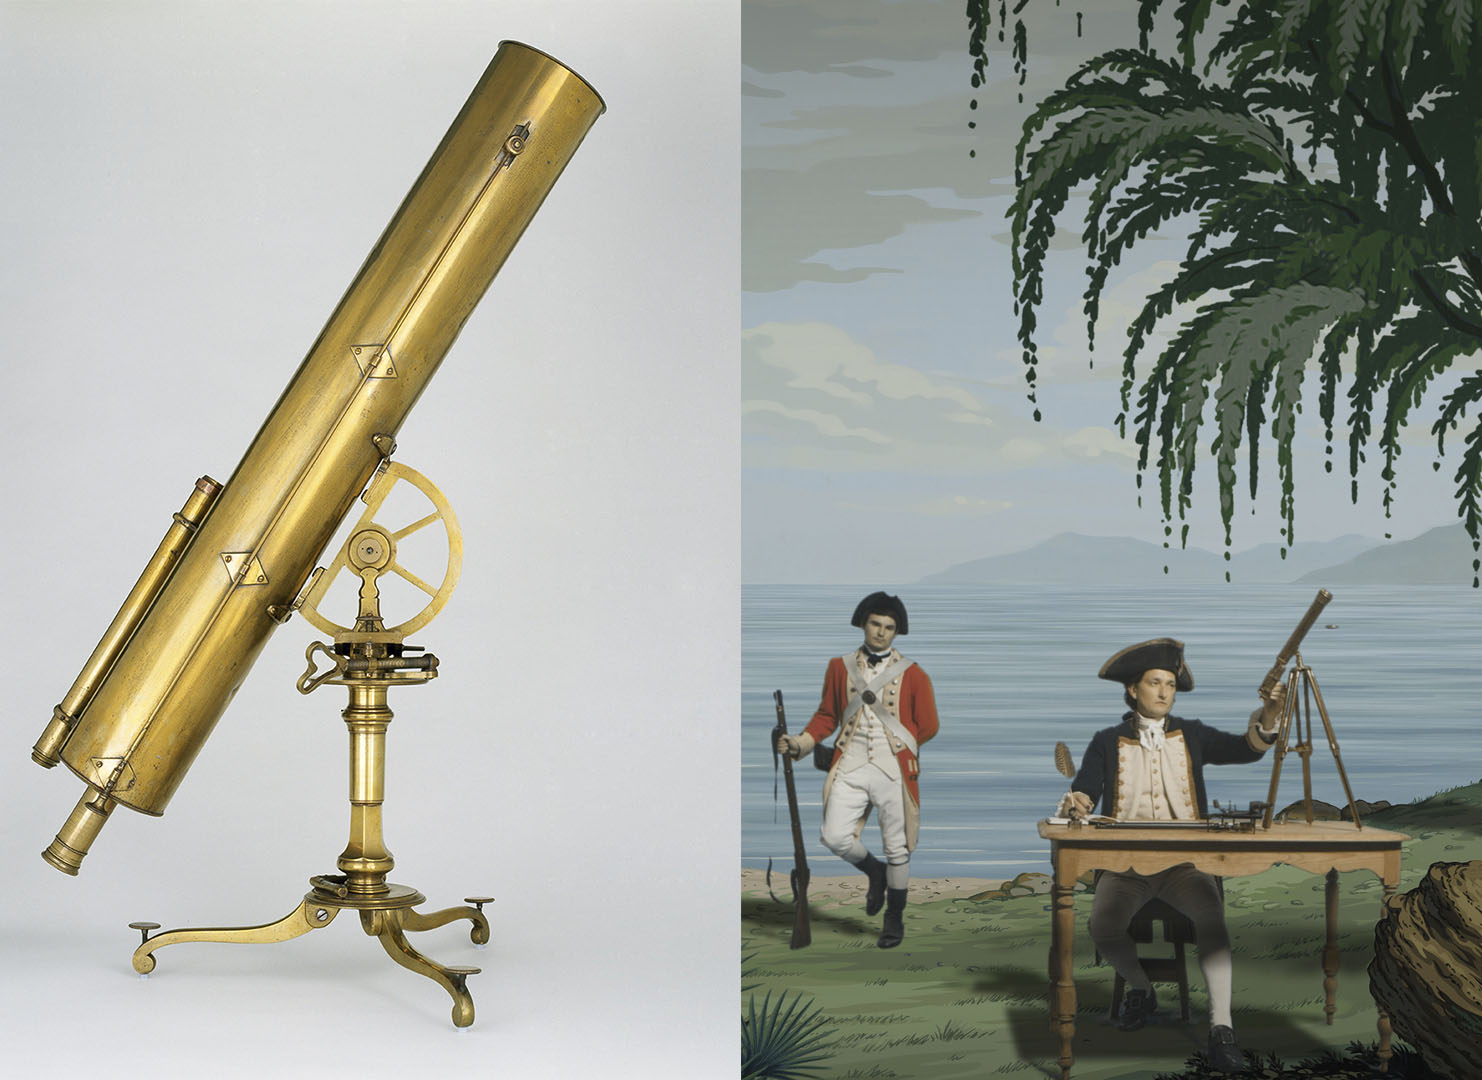 On the left, a brass telescope from the 1700s, on the right, in a still from in Pursuit of Venus [infected], a man playing James Cook sits at his desk writing, while looking at his telescope